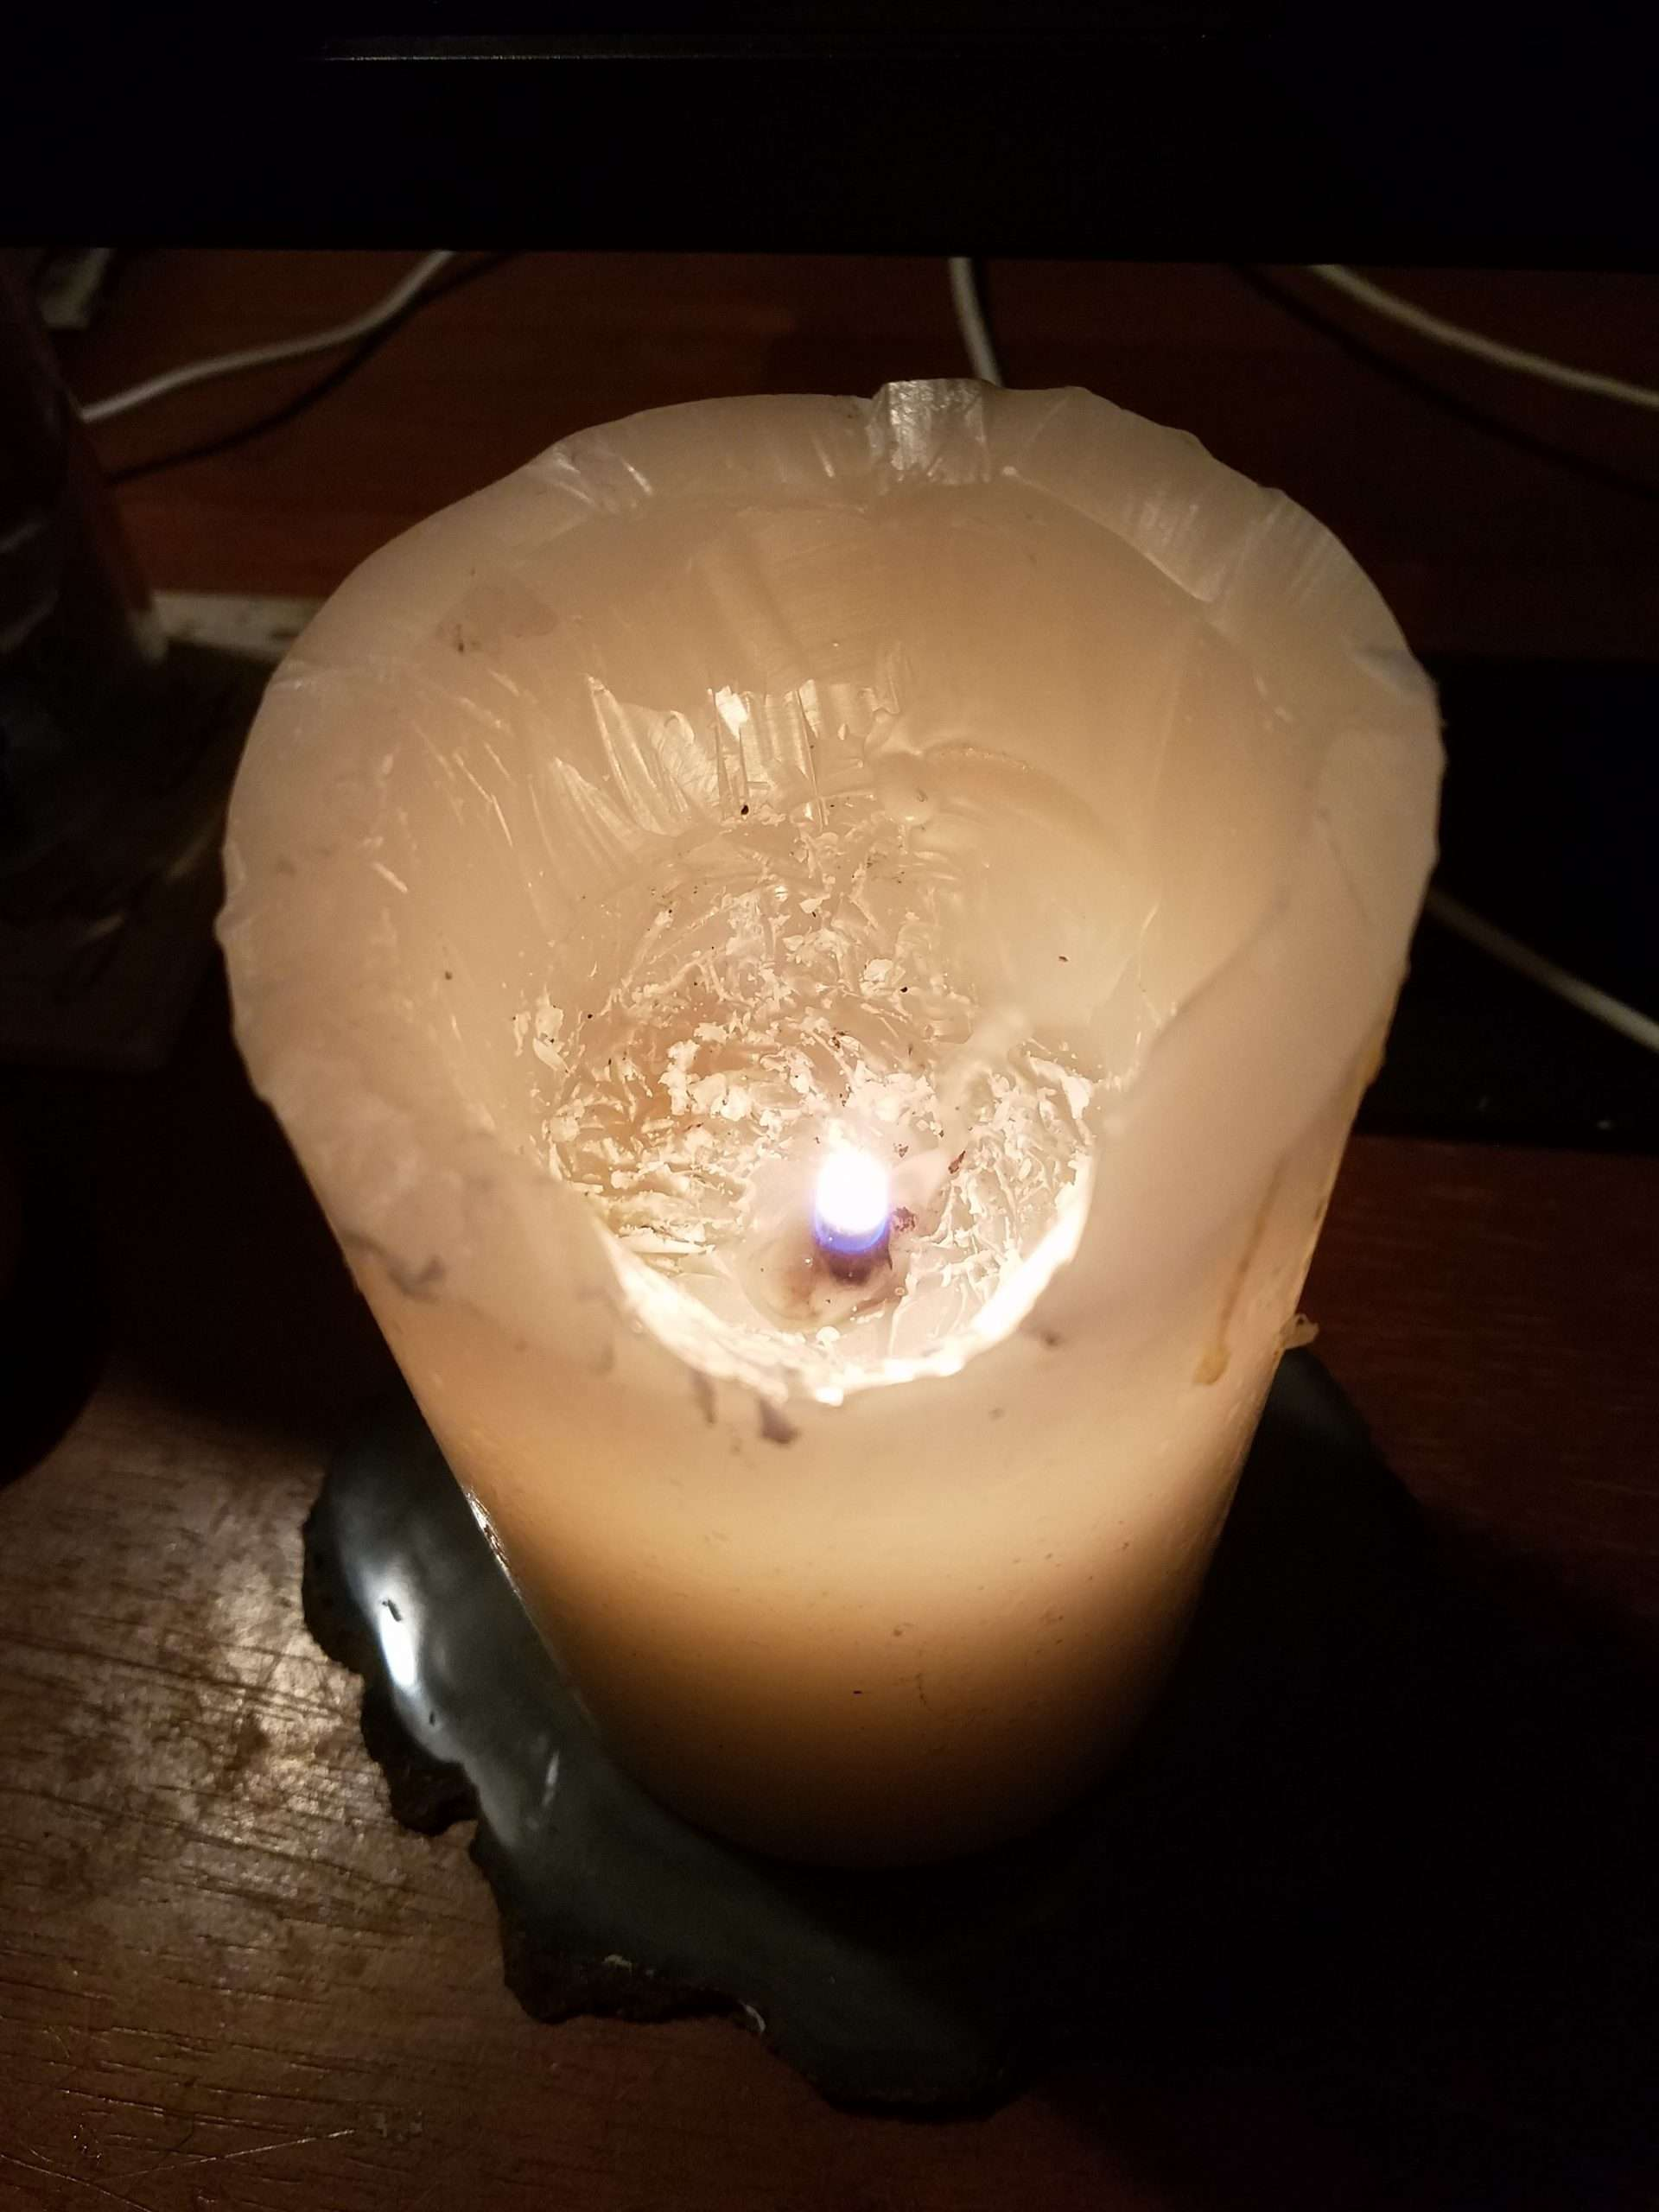 Solstice Night, Tea, and Light - Photo of a just-lit candle, with the wax still jagged